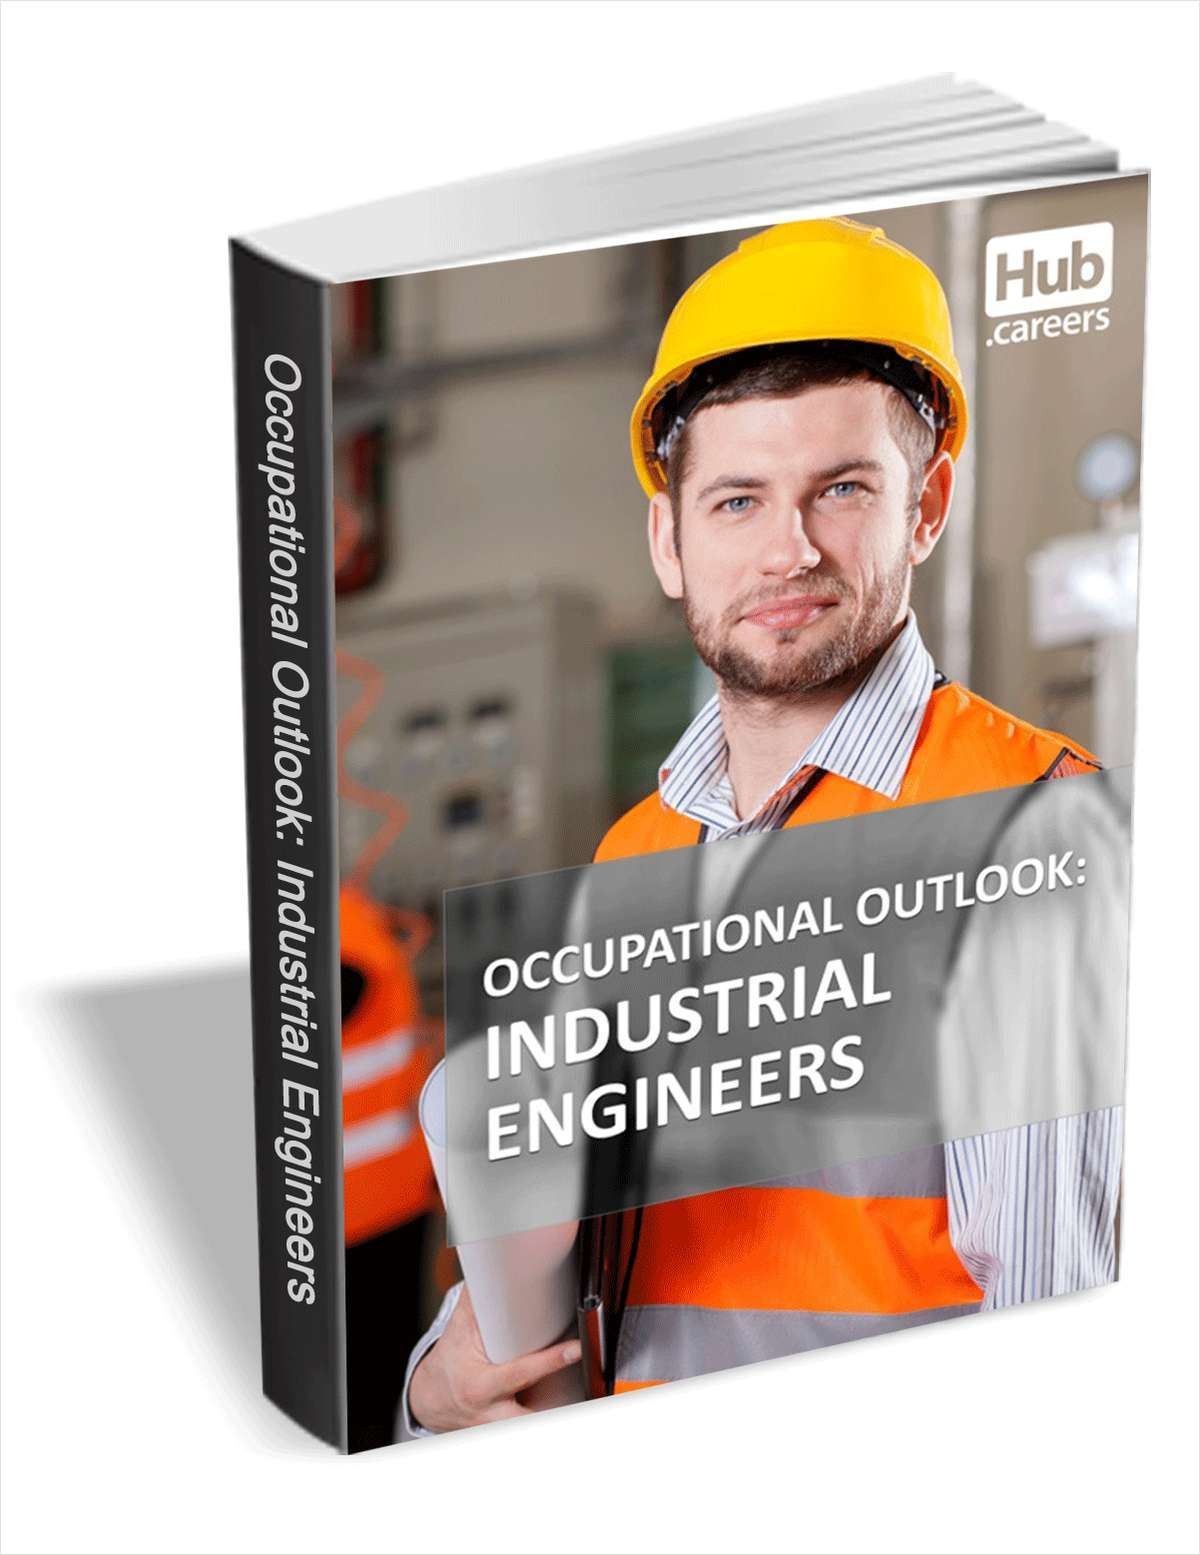 Industrial Engineers - Occupational Outlook